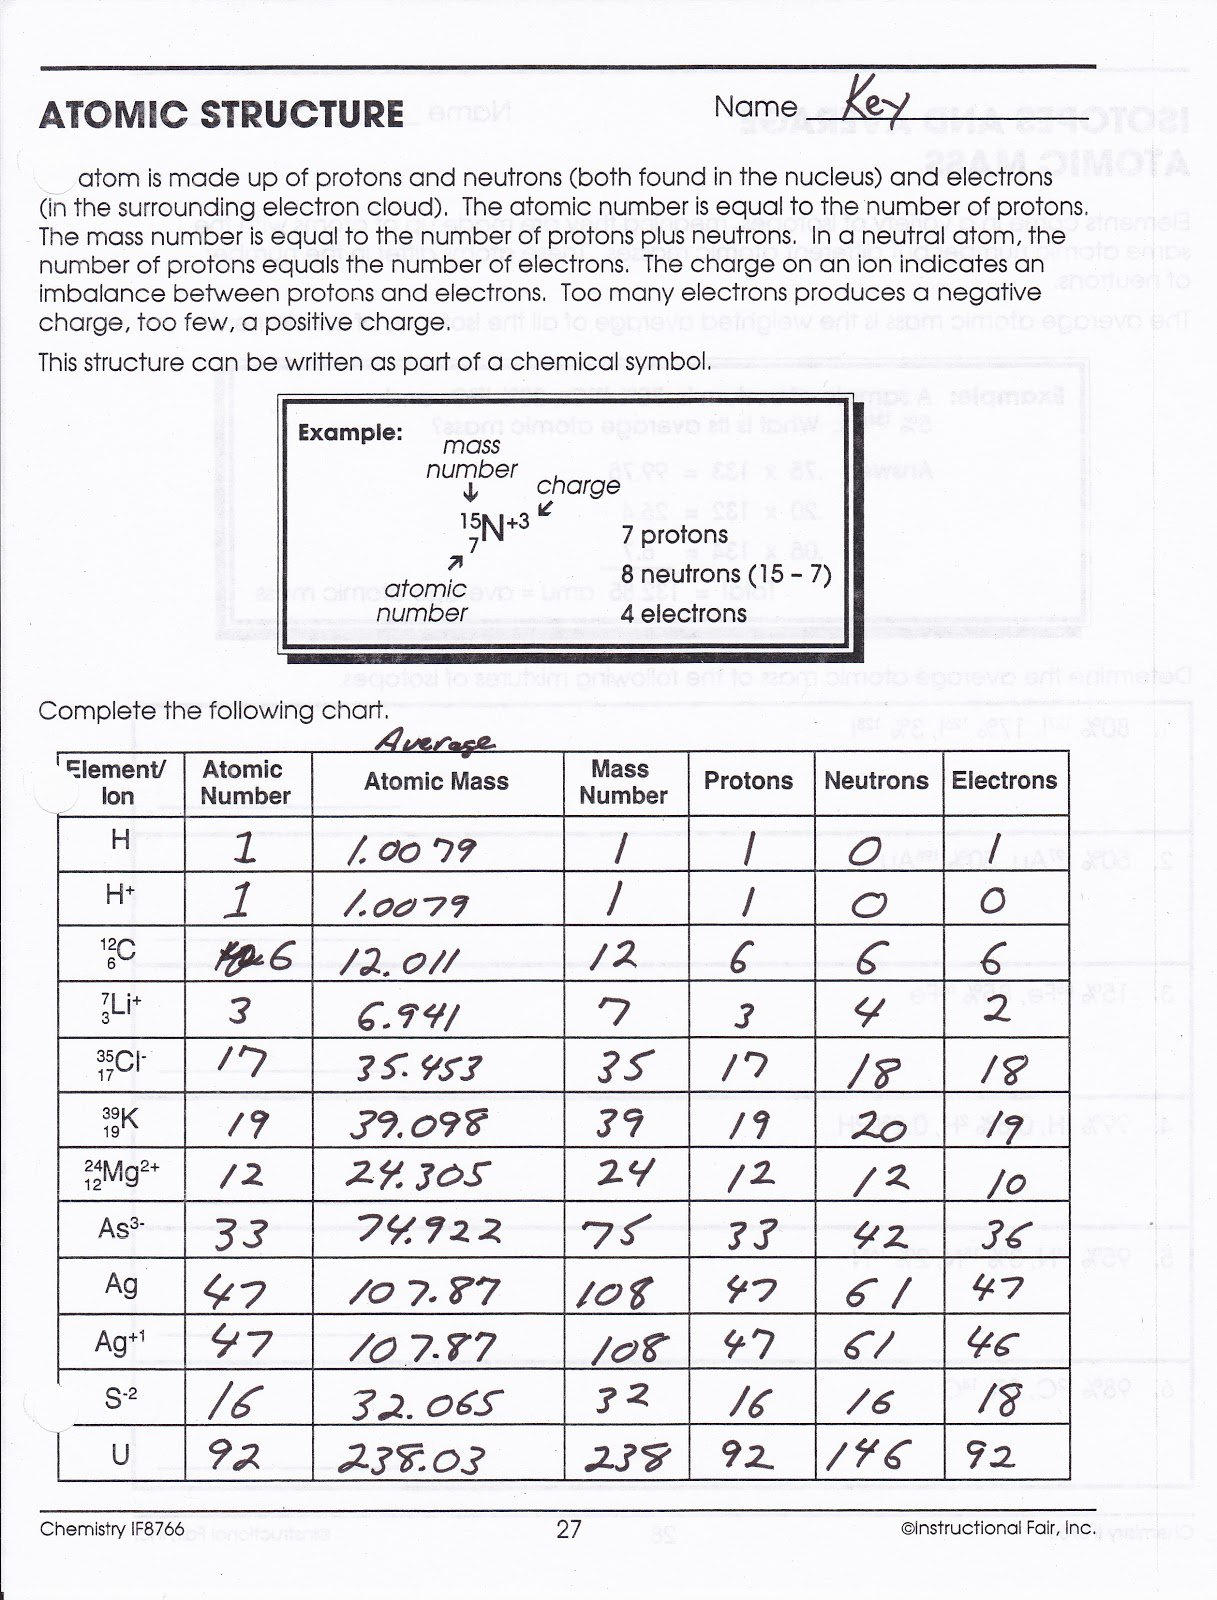 Atomic Structure Worksheet Page 27 - Livinghealthybulletin